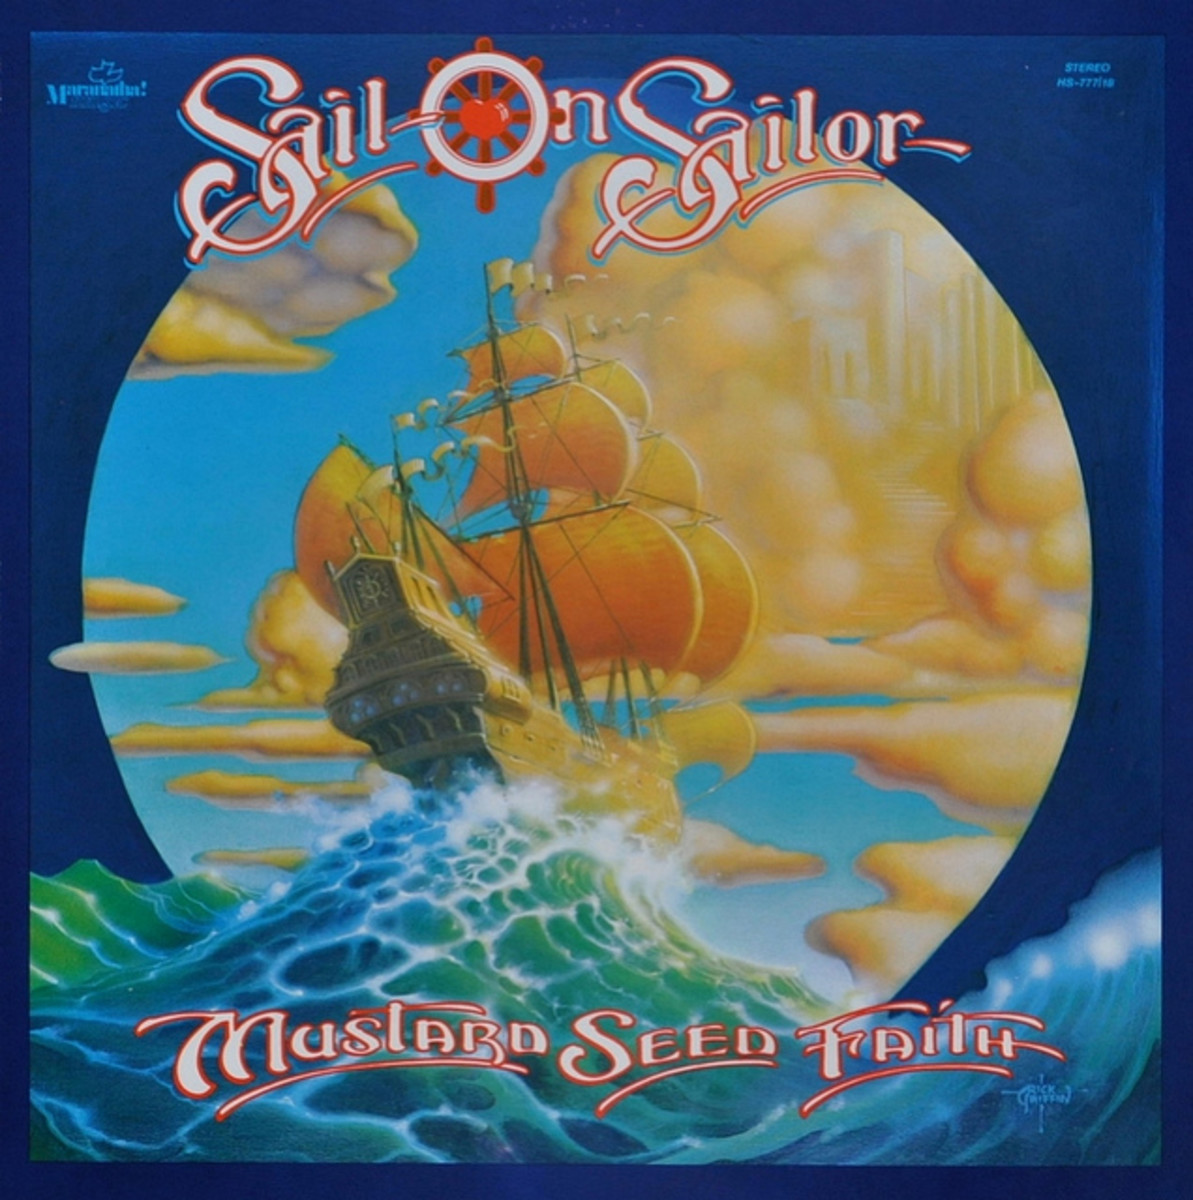 "Sail On Sailor ""Mustard Seed Faith"" Maranatha! Music 12"" LP vinyl record, US Pressing (1975) Album Cover Art by Rick Griffin"